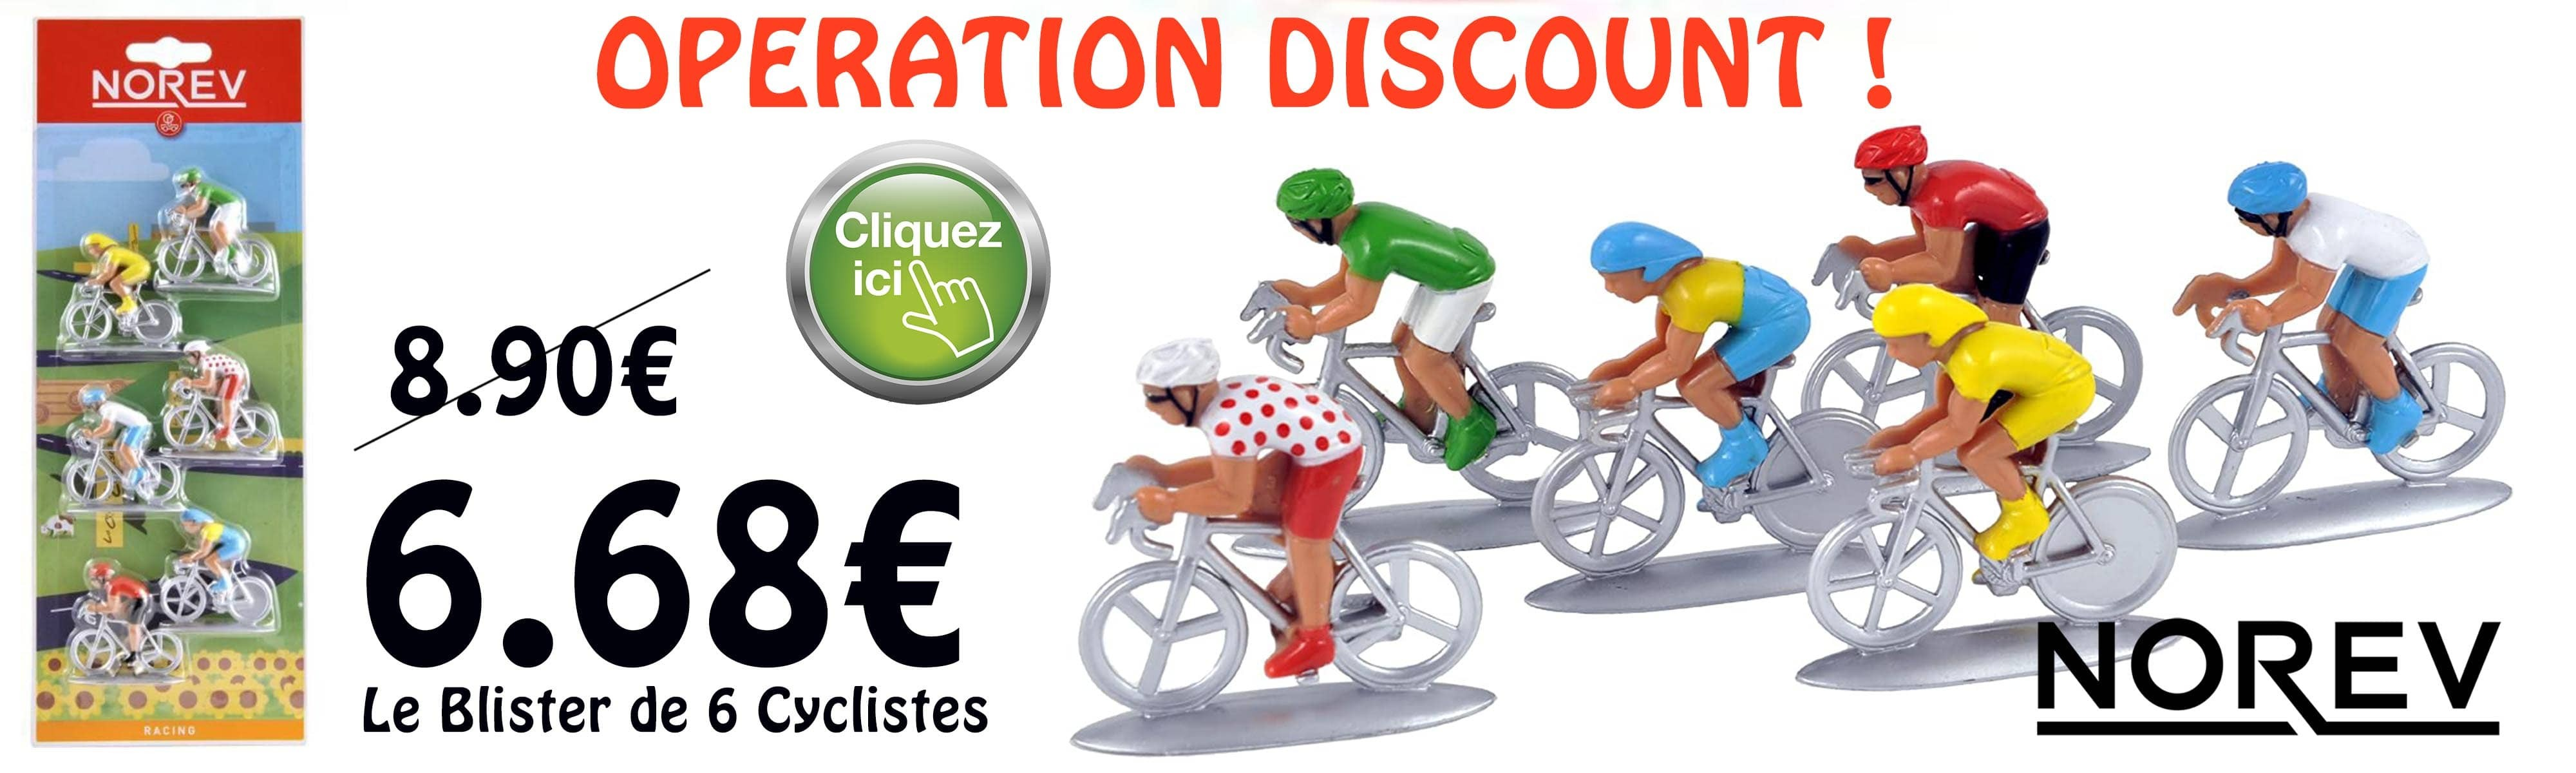 Cyclistes-norev-miniatures-tour-de-france